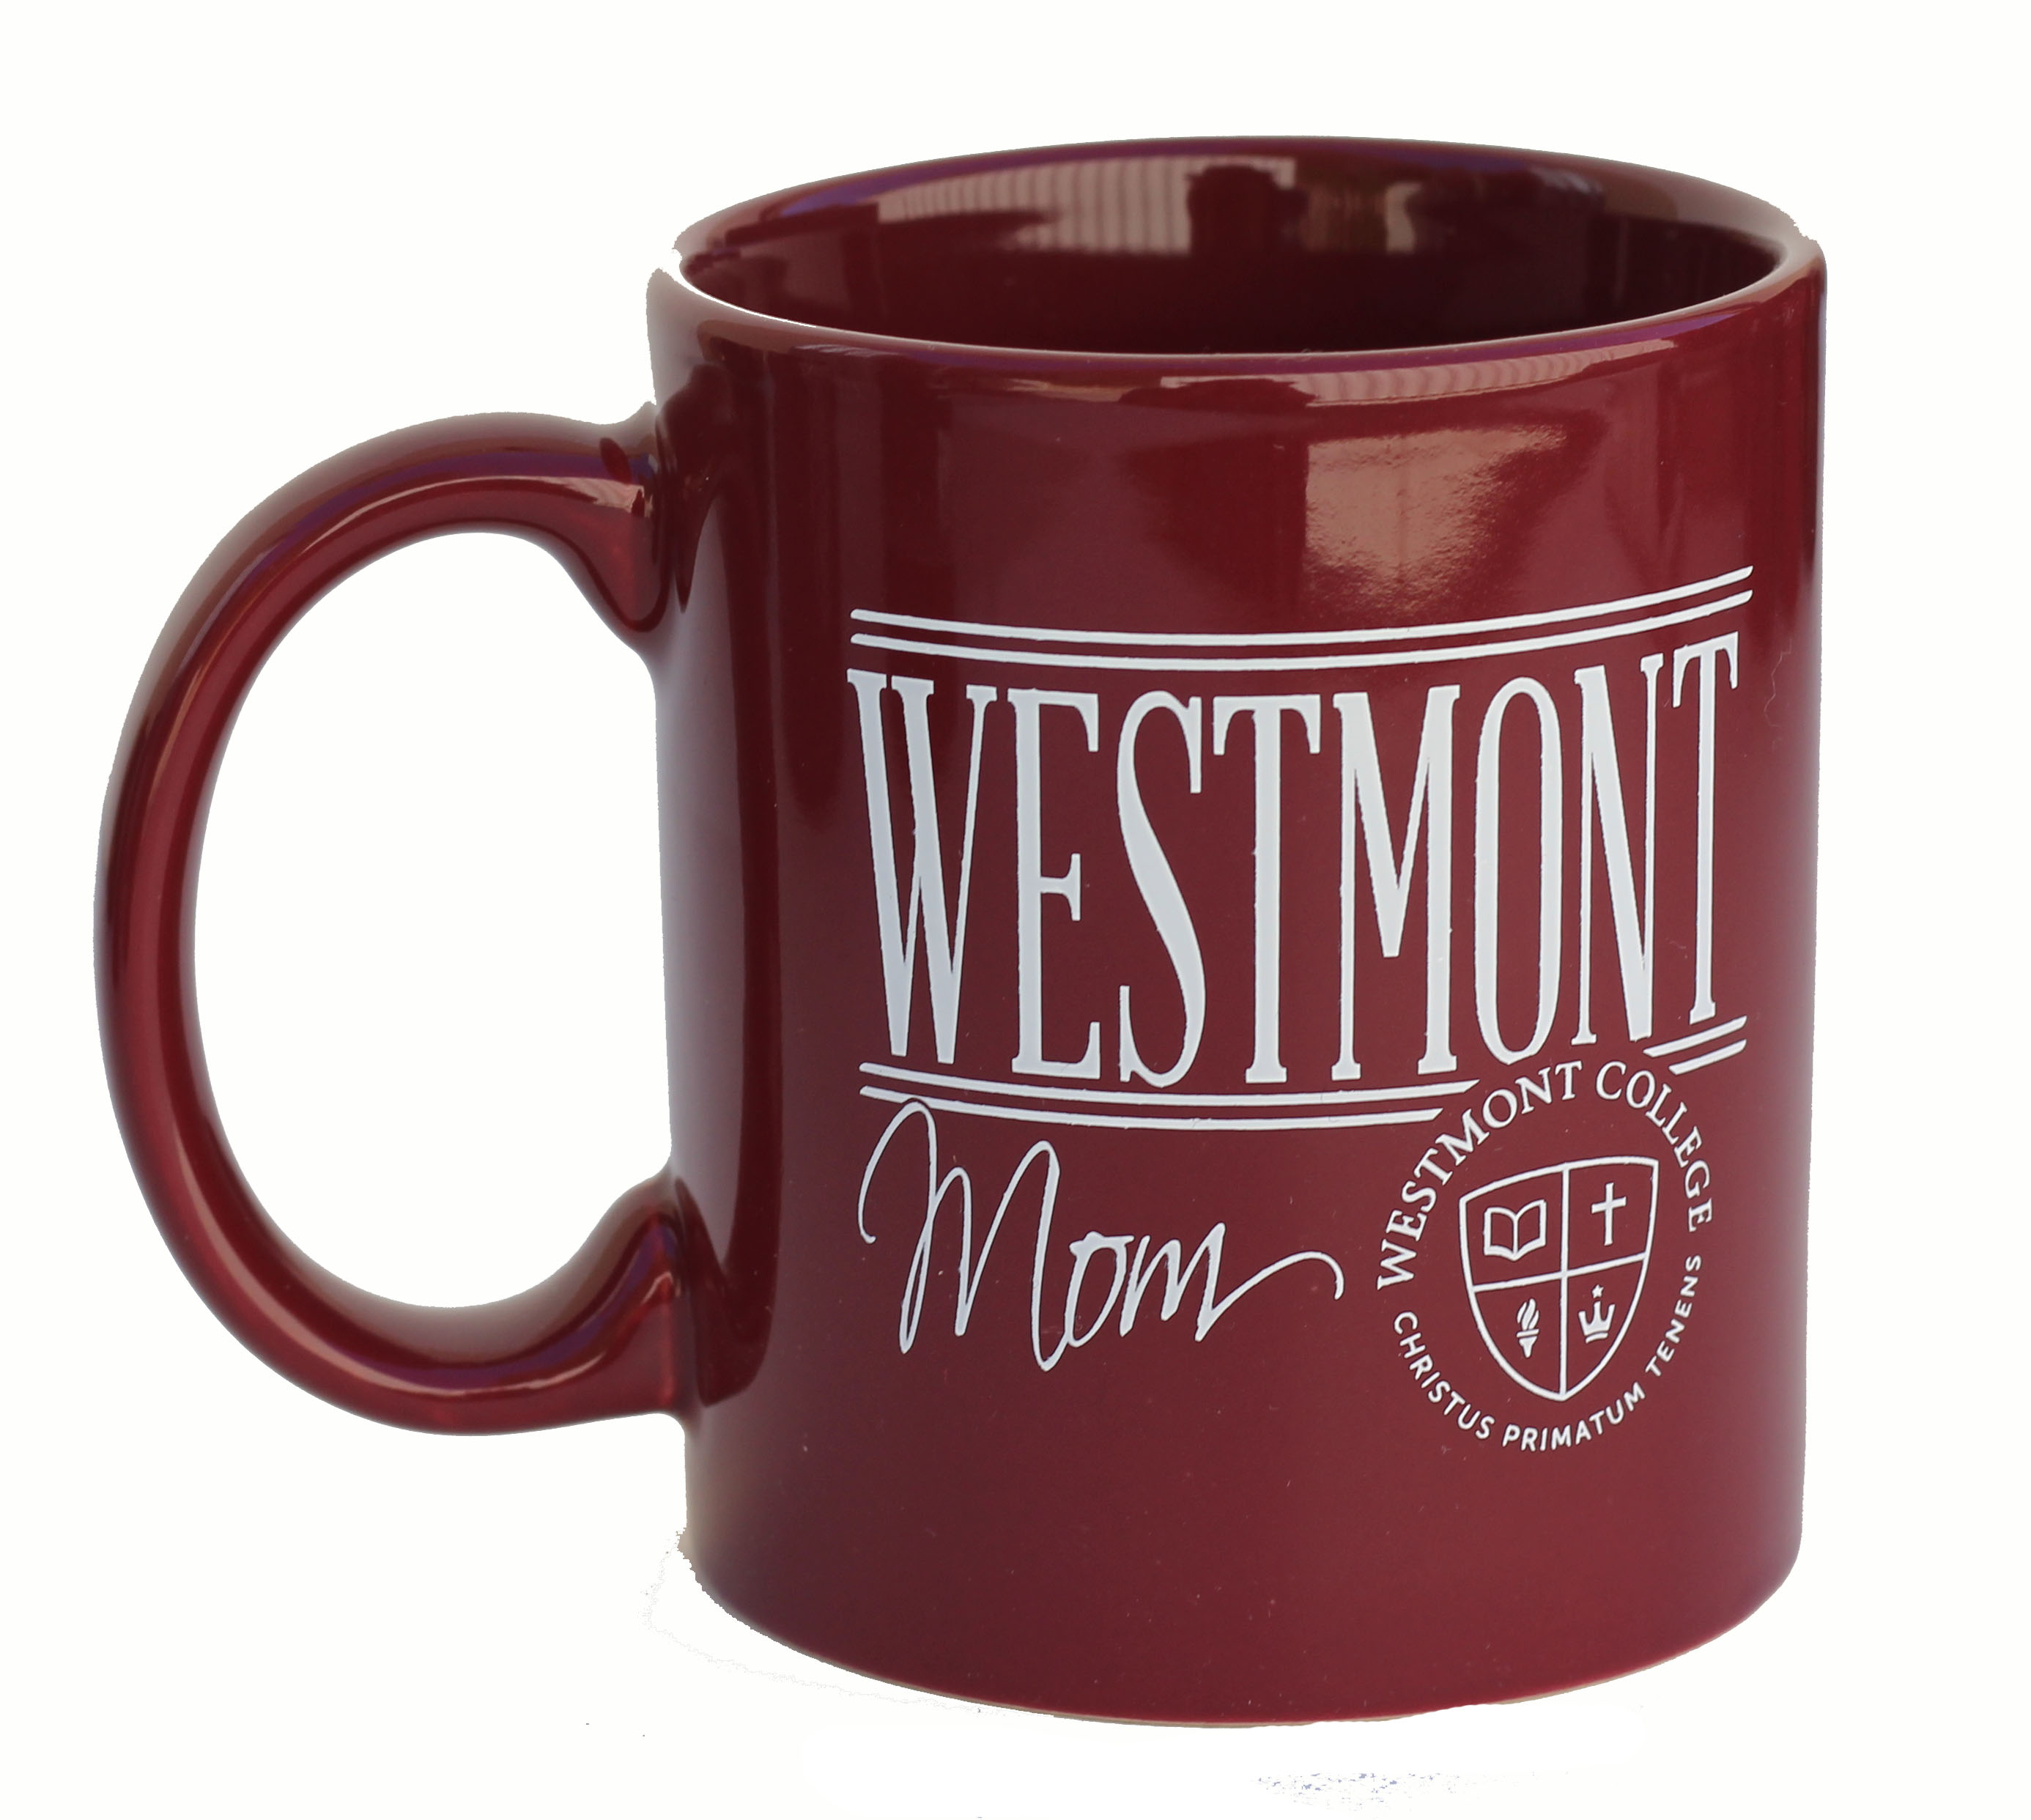 Image for the Westmont Mom Mug product